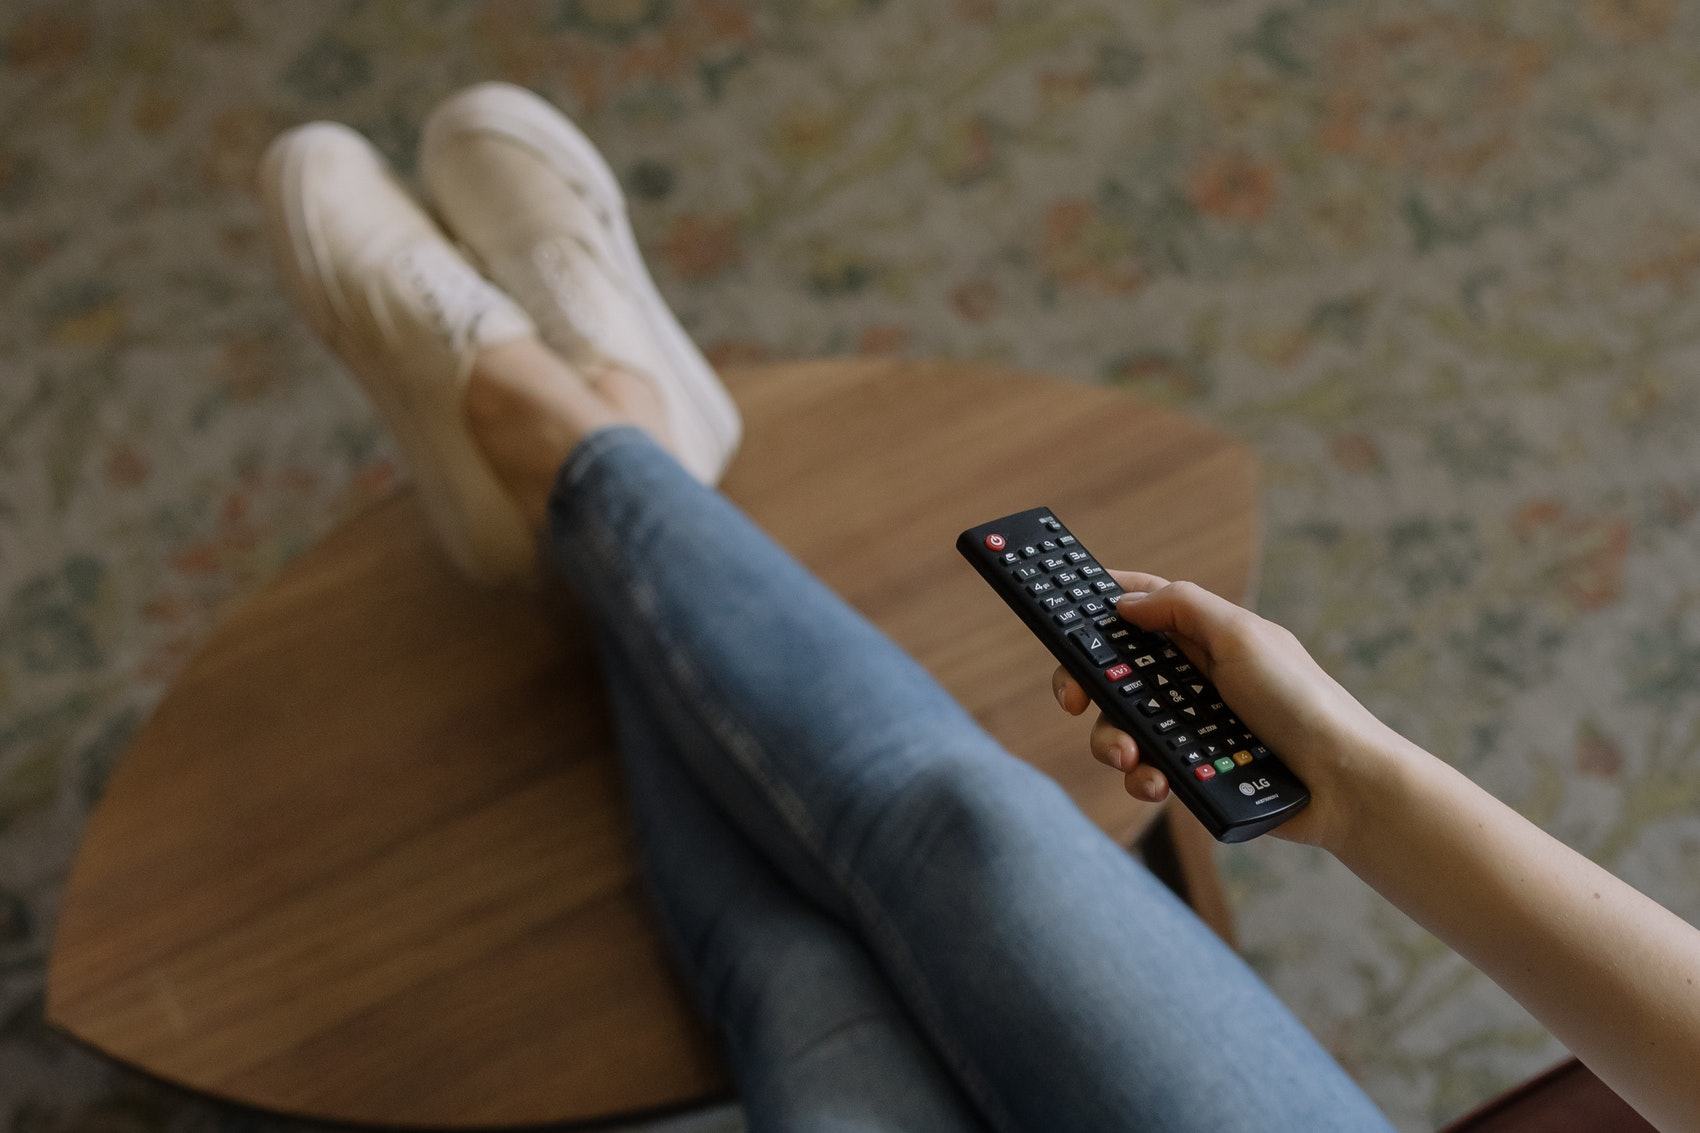 73% of the respondents prefer watching women's cricket on TV